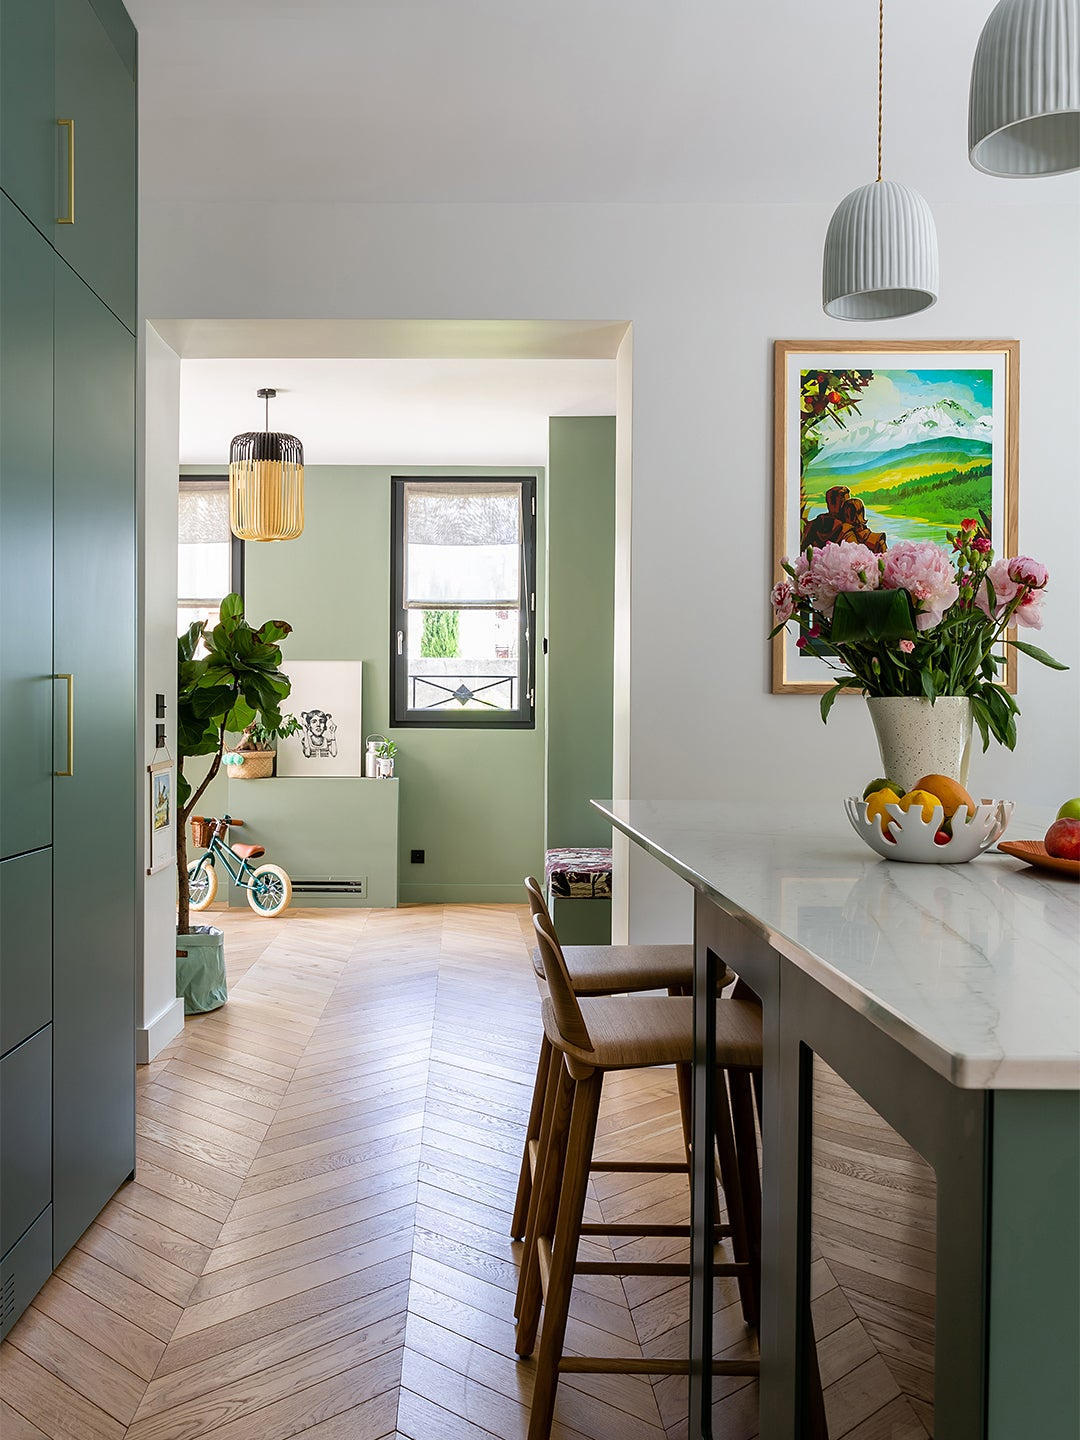 This Brand's Kitchen Cabinet Color Is Officially More Popular Than Classic Navy